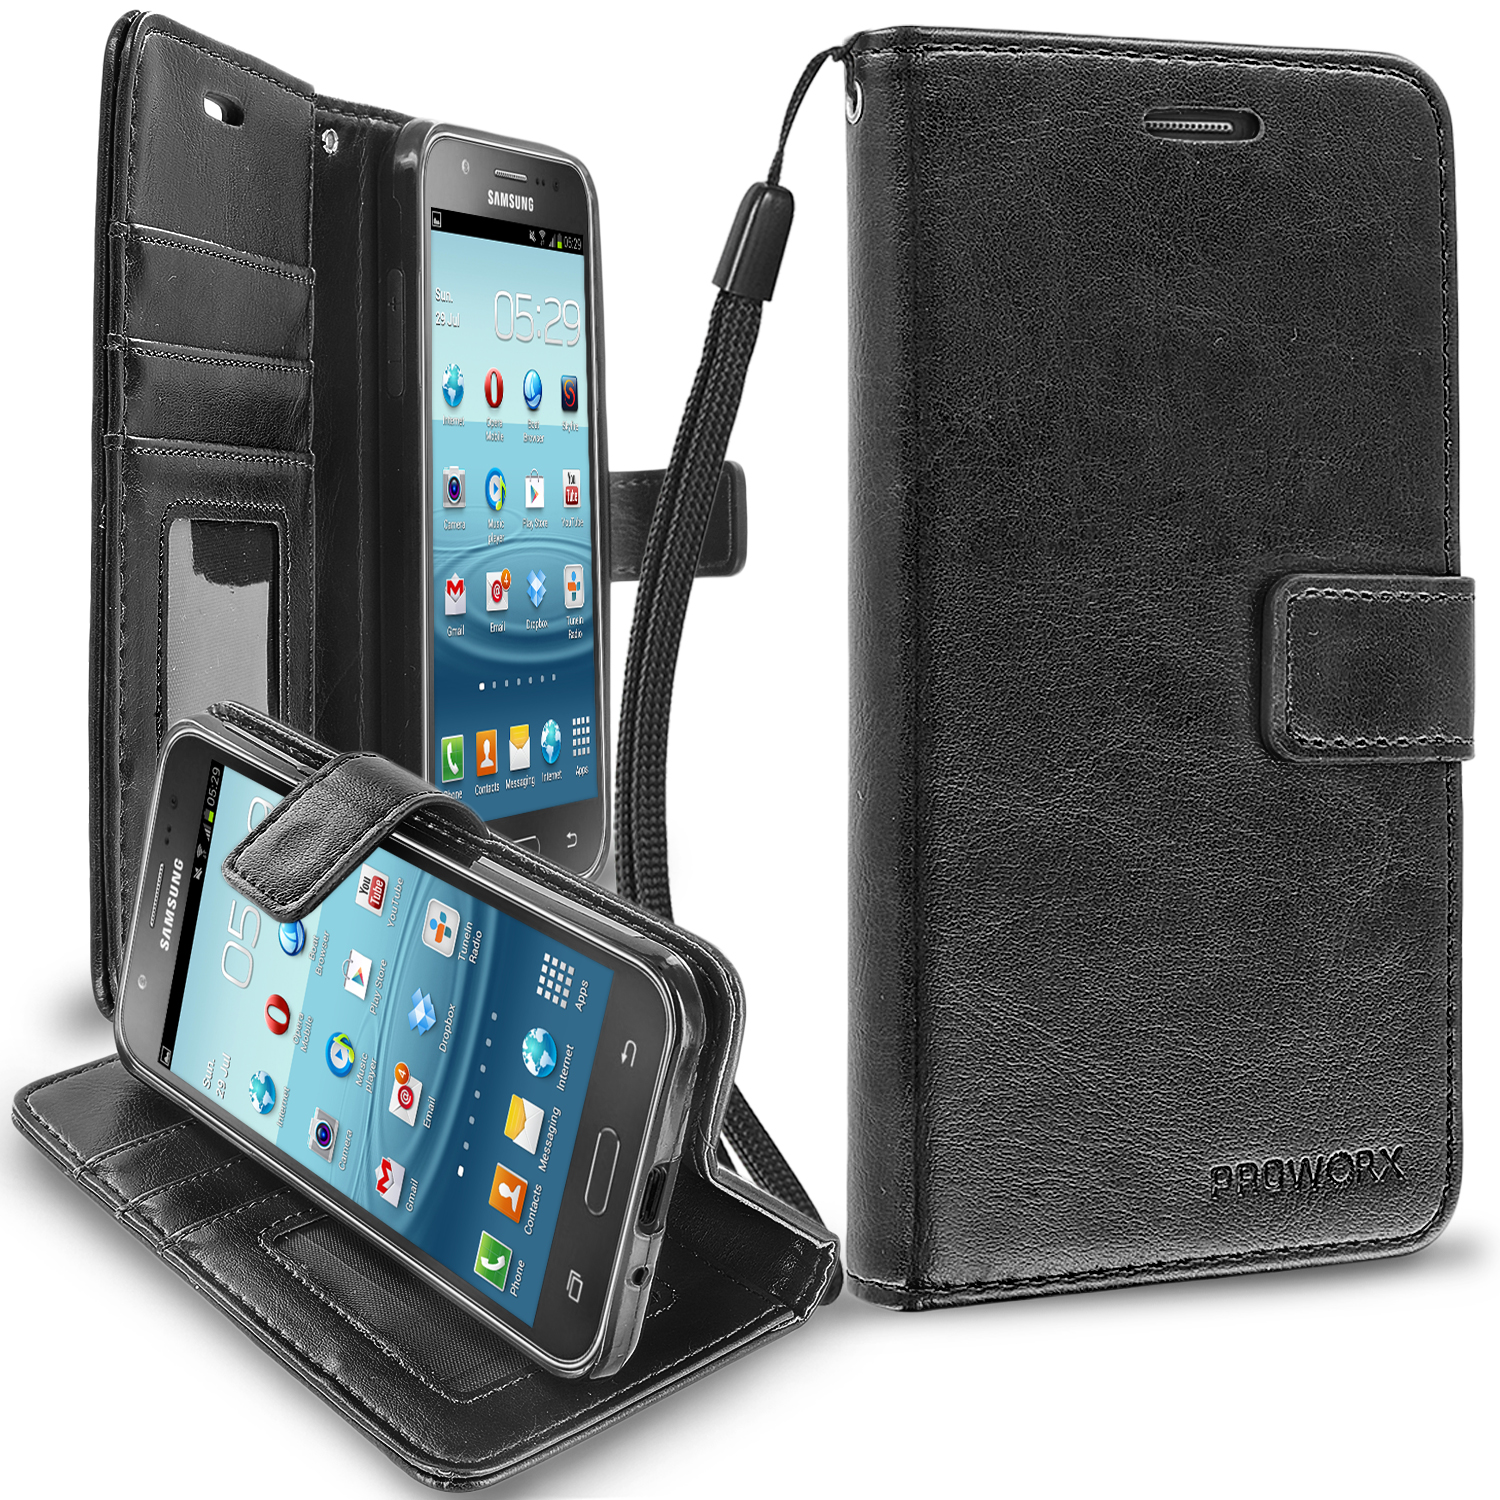 Samsung Galaxy J3 2016 Amp Prime Express Prime J3V Black ProWorx Wallet Case Luxury PU Leather Case Cover With Card Slots & Stand